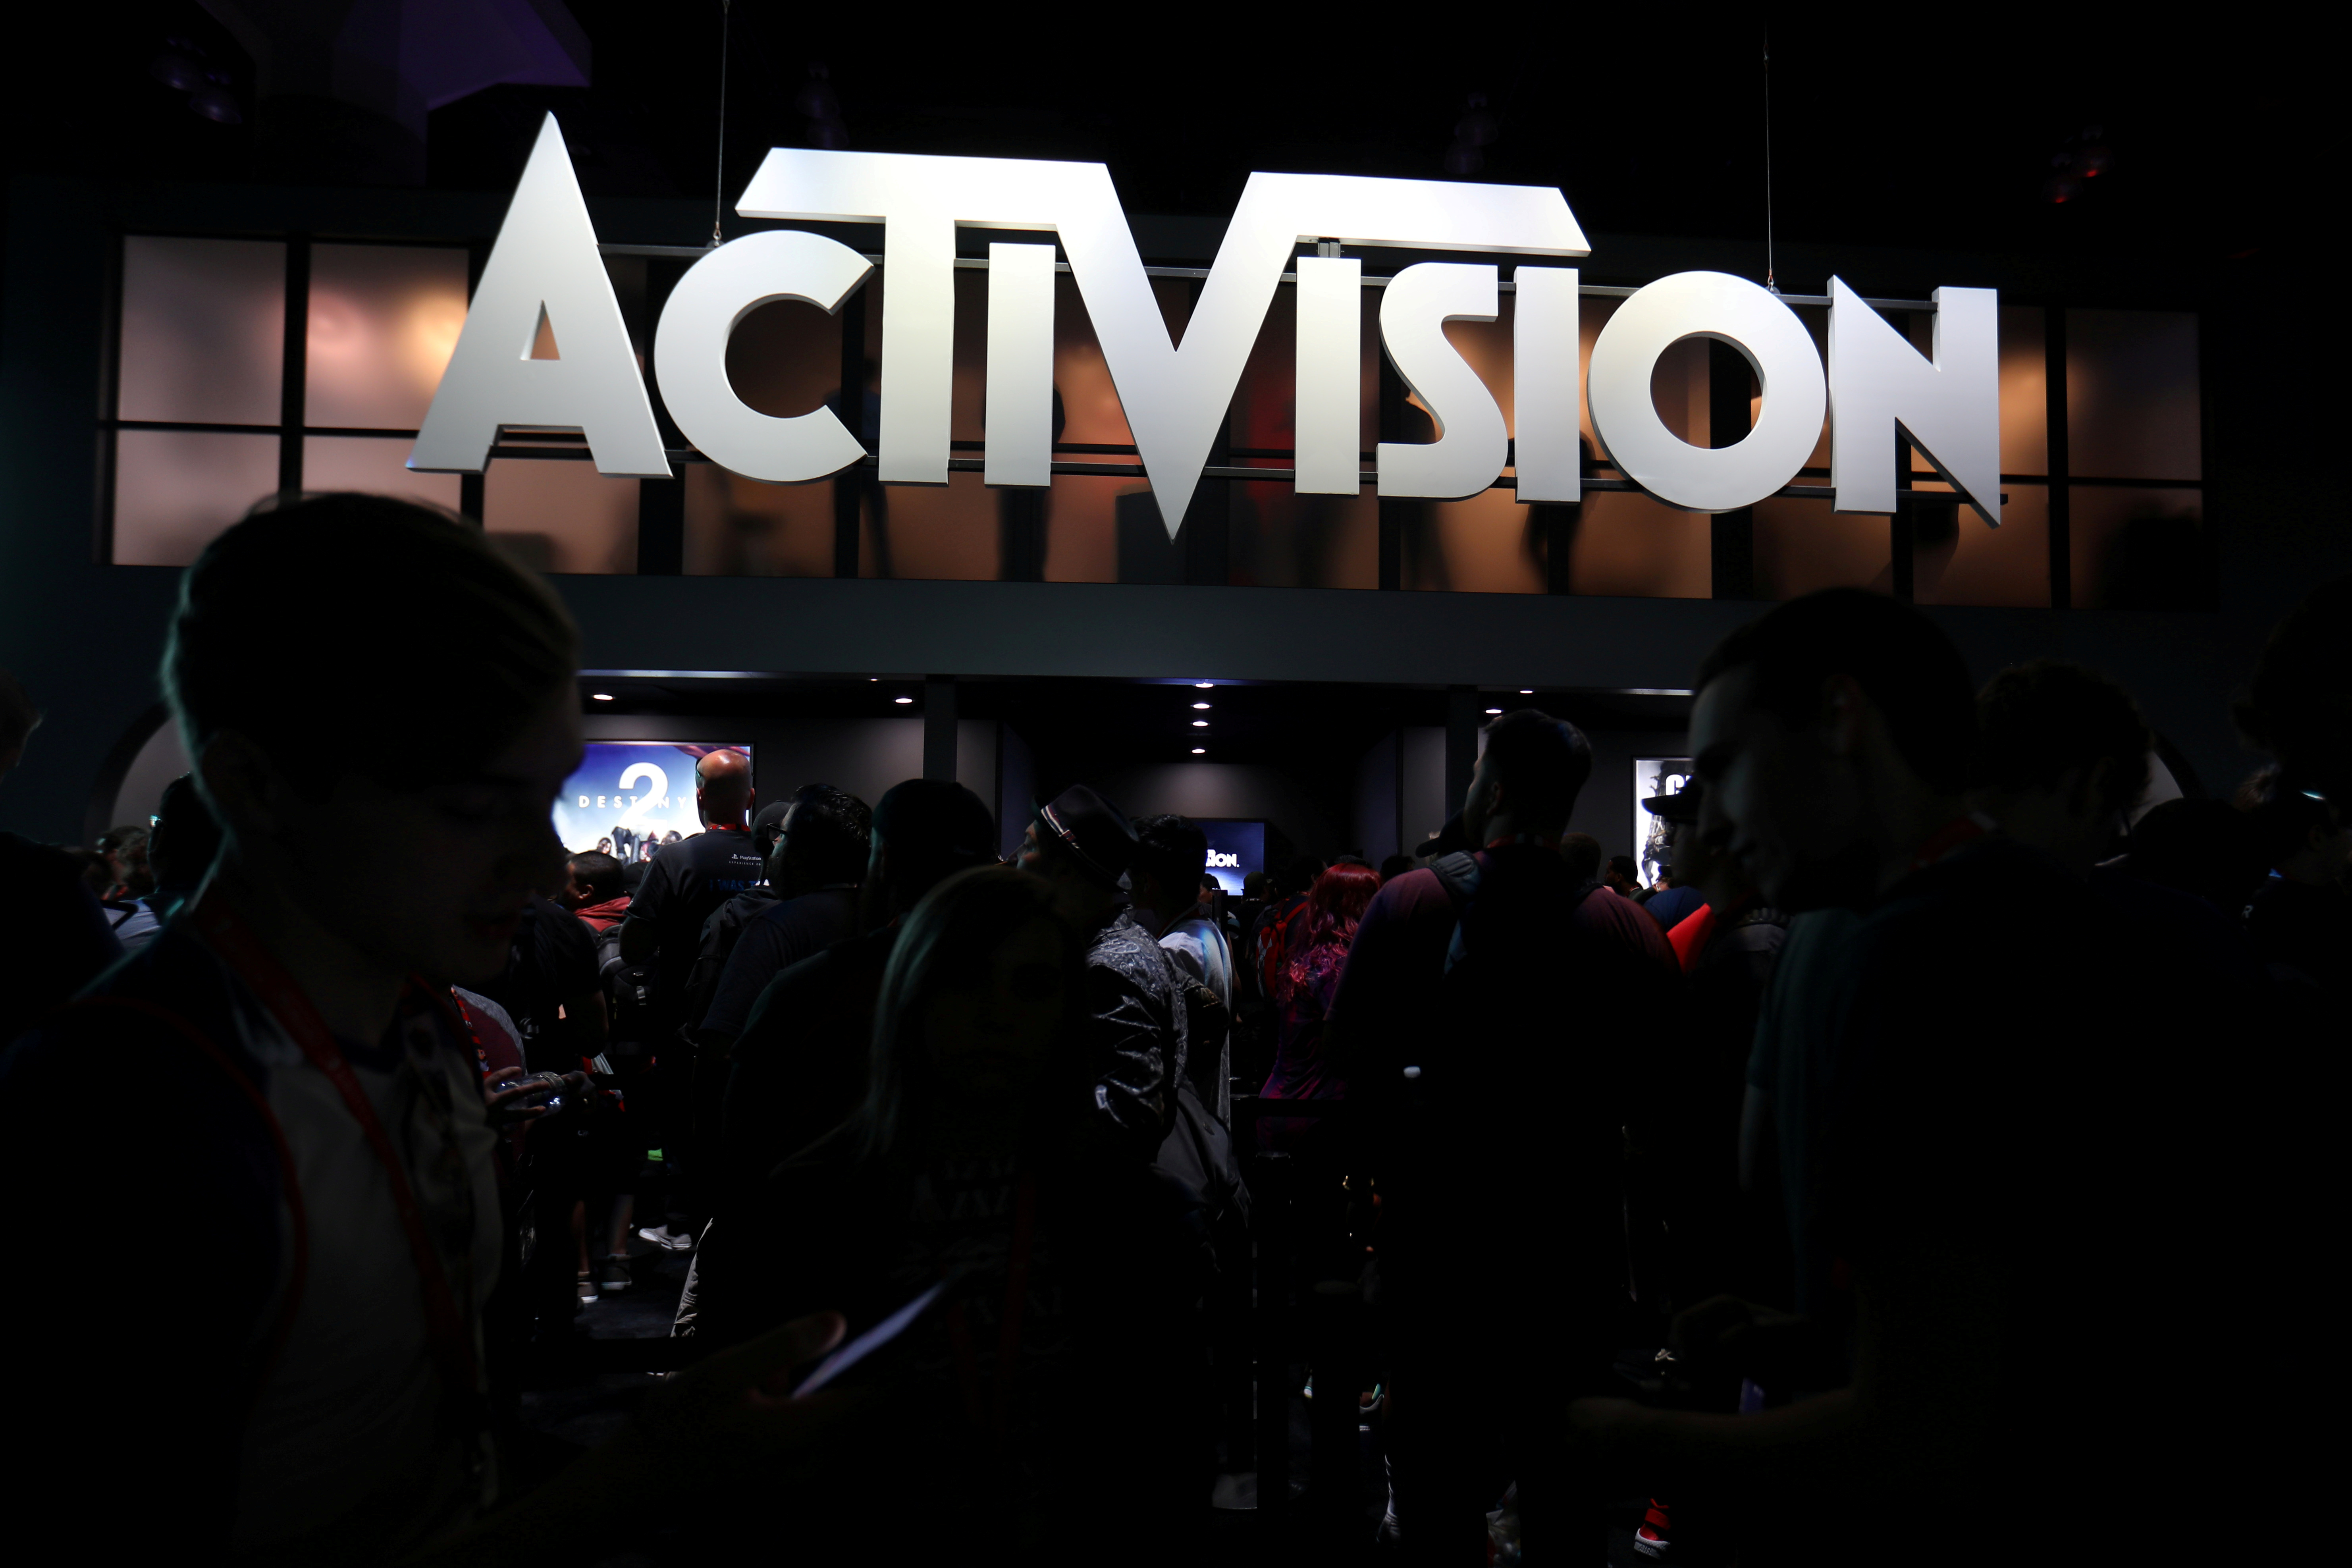 The Activision booth is shown at the E3 2017 Electronic Entertainment Expo in Los Angeles, California, U.S. June 13, 2017.  REUTERS/ Mike Blake